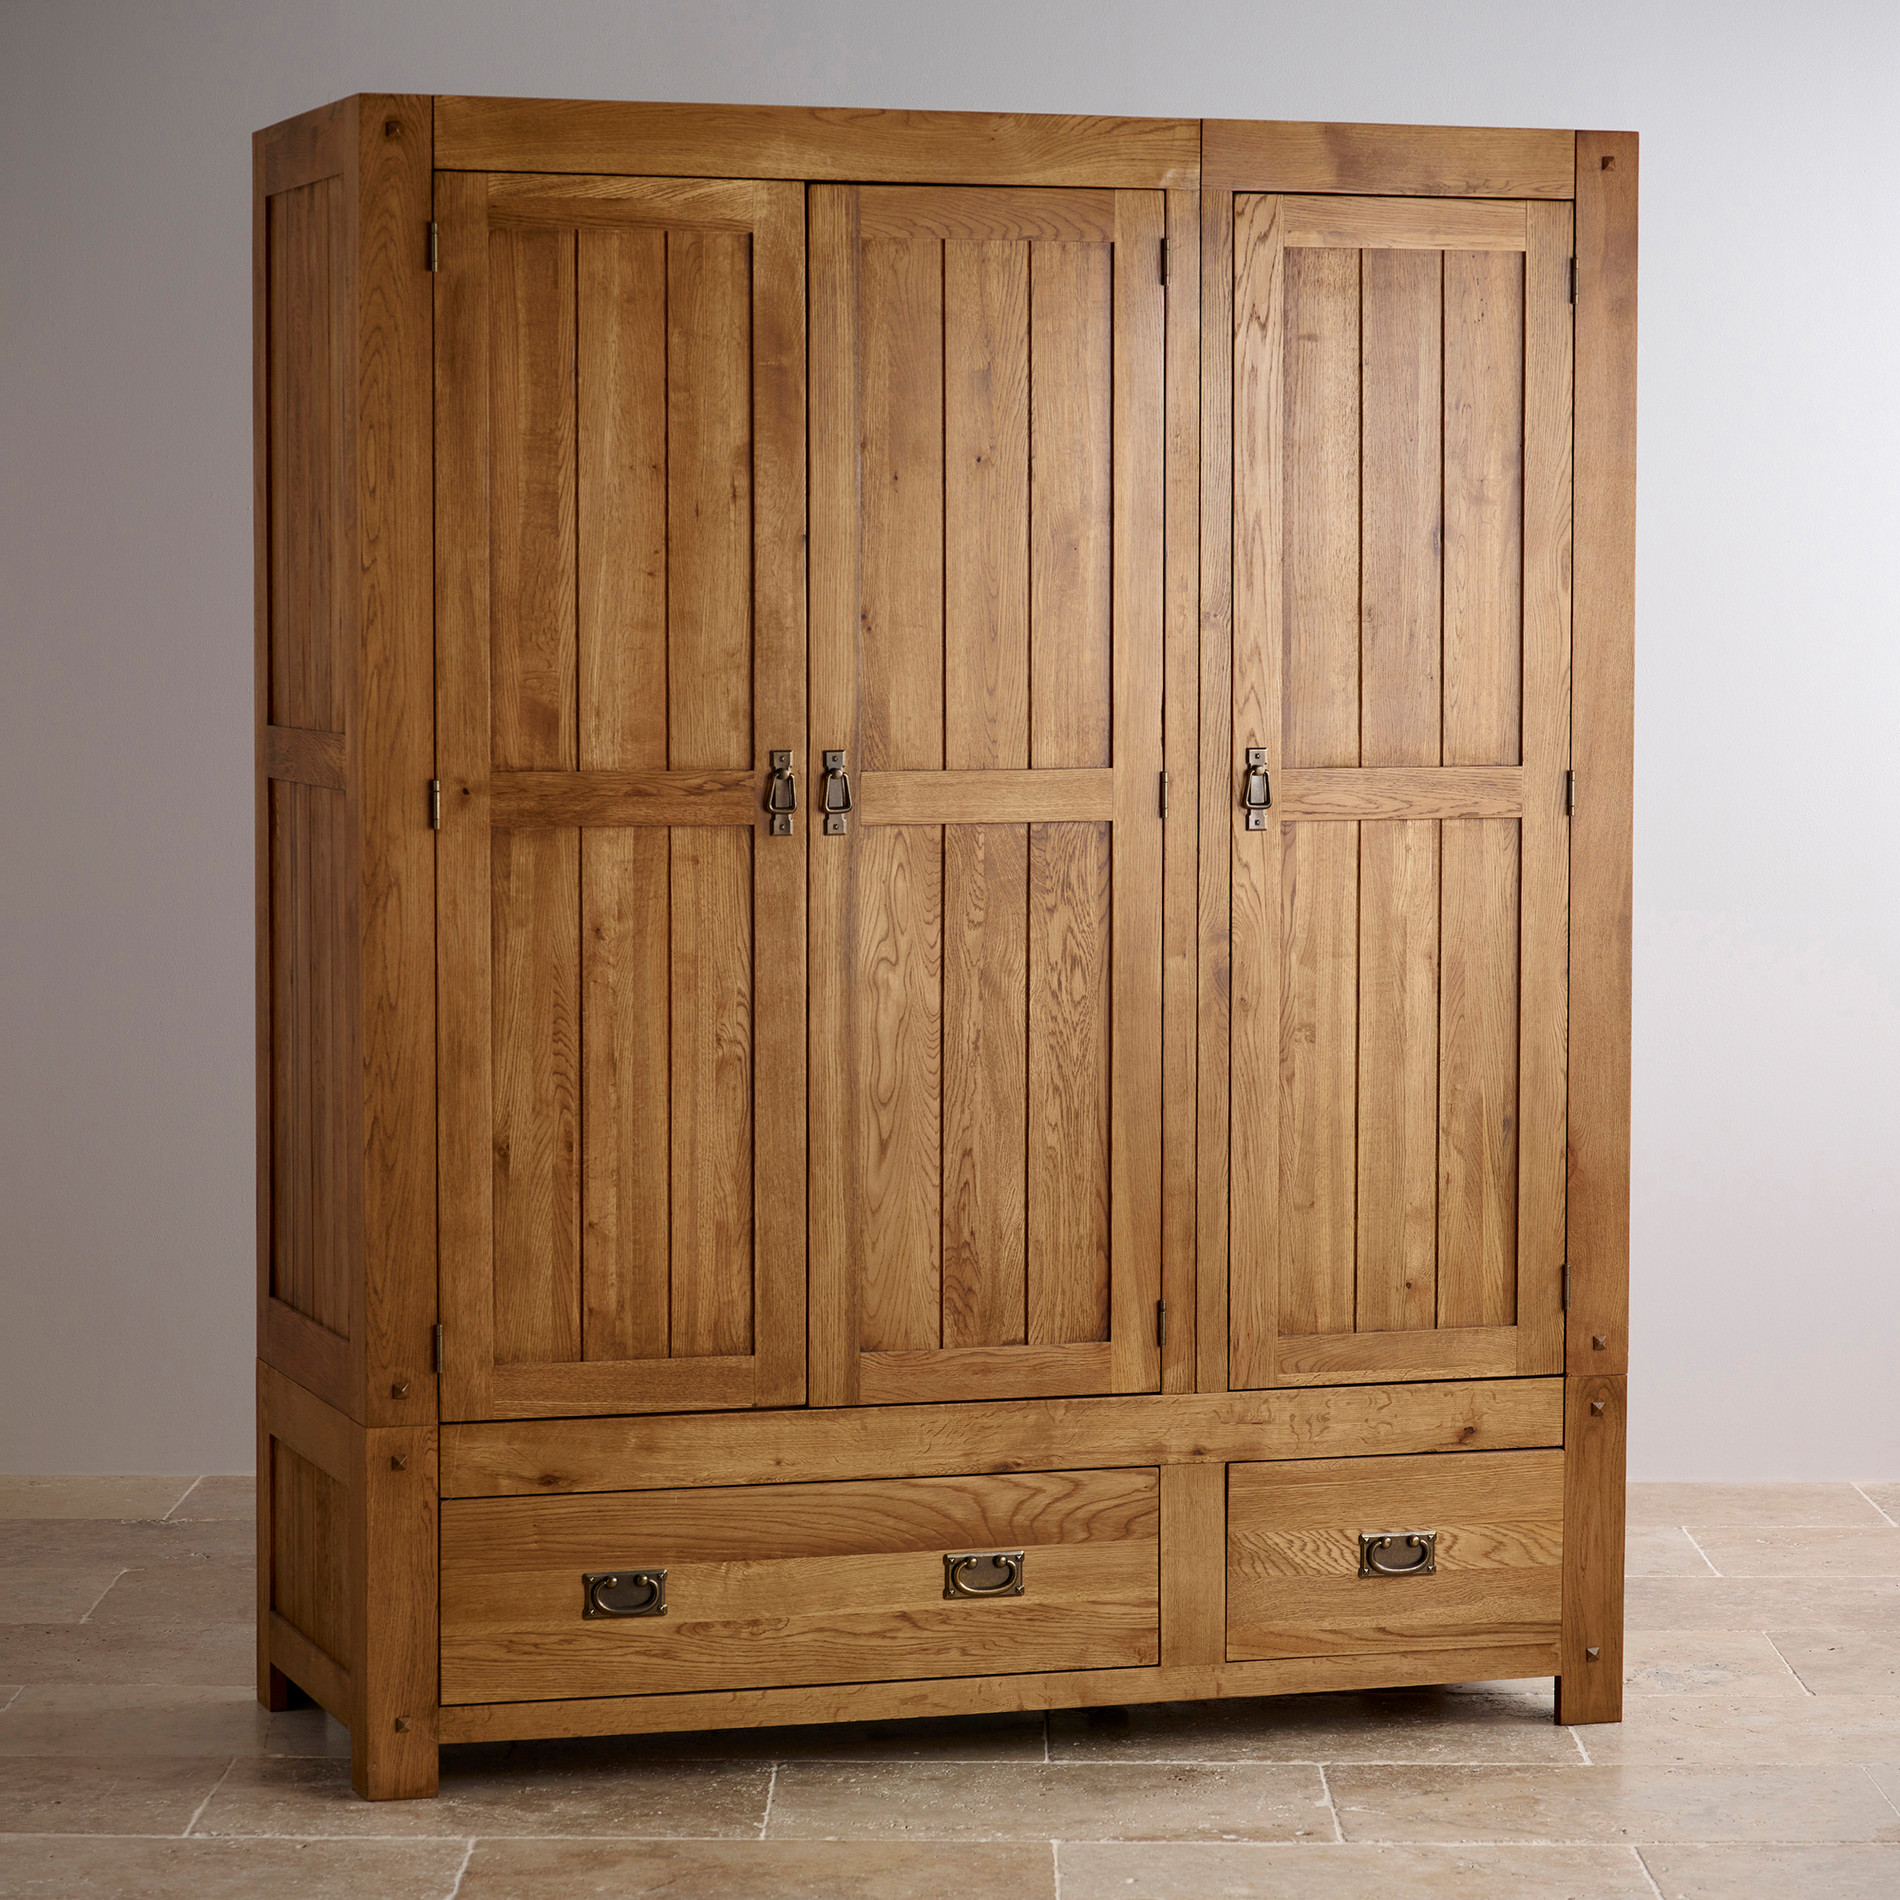 Quercus triple wardrobe rustic oak oak furniture land for Solid oak furniture